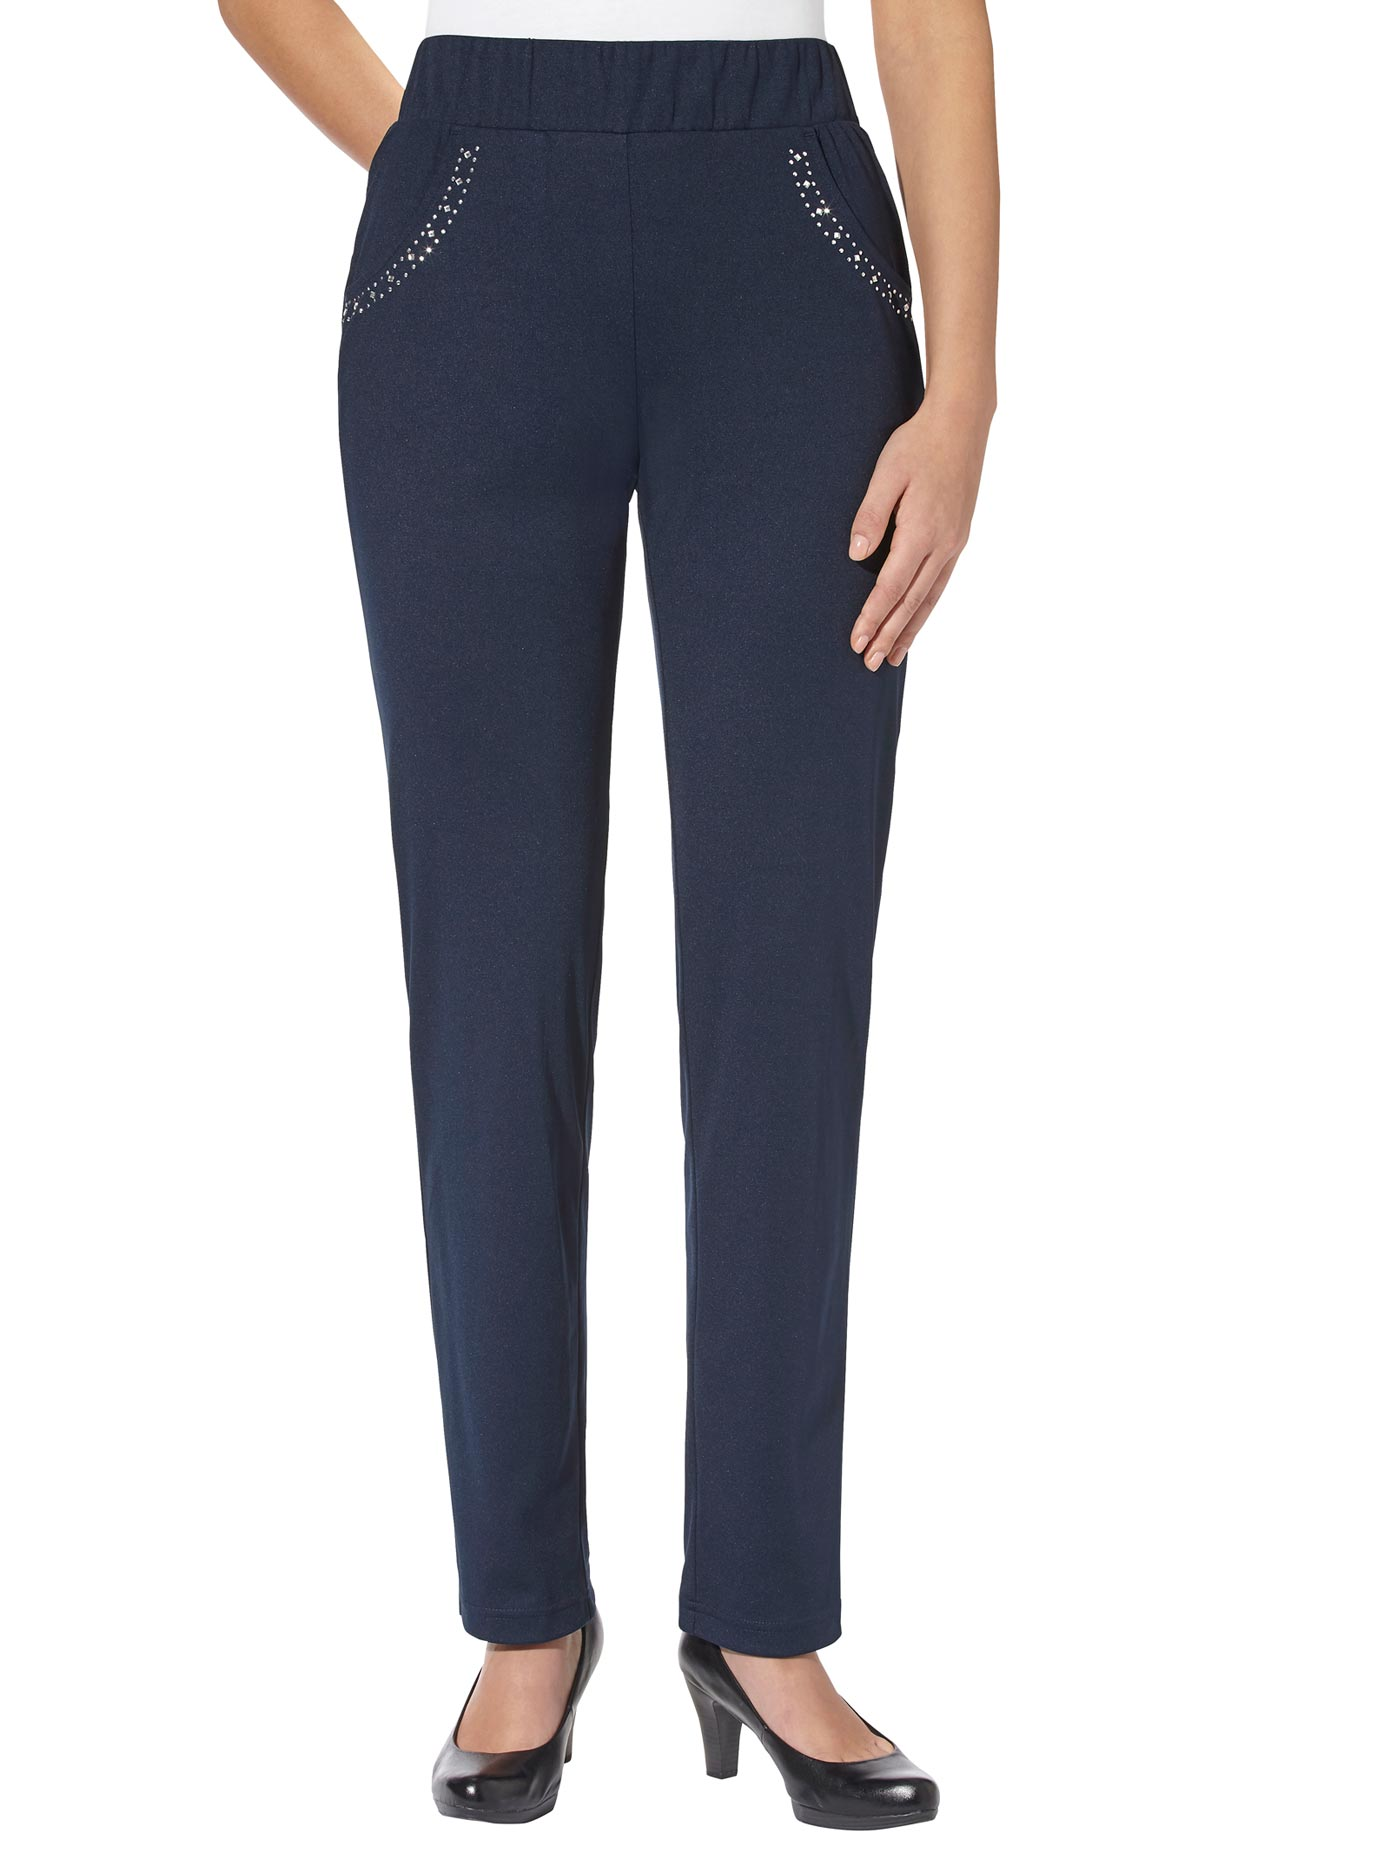 Image of Casual Looks Jersey-Hose in angenehm weicher Qualität